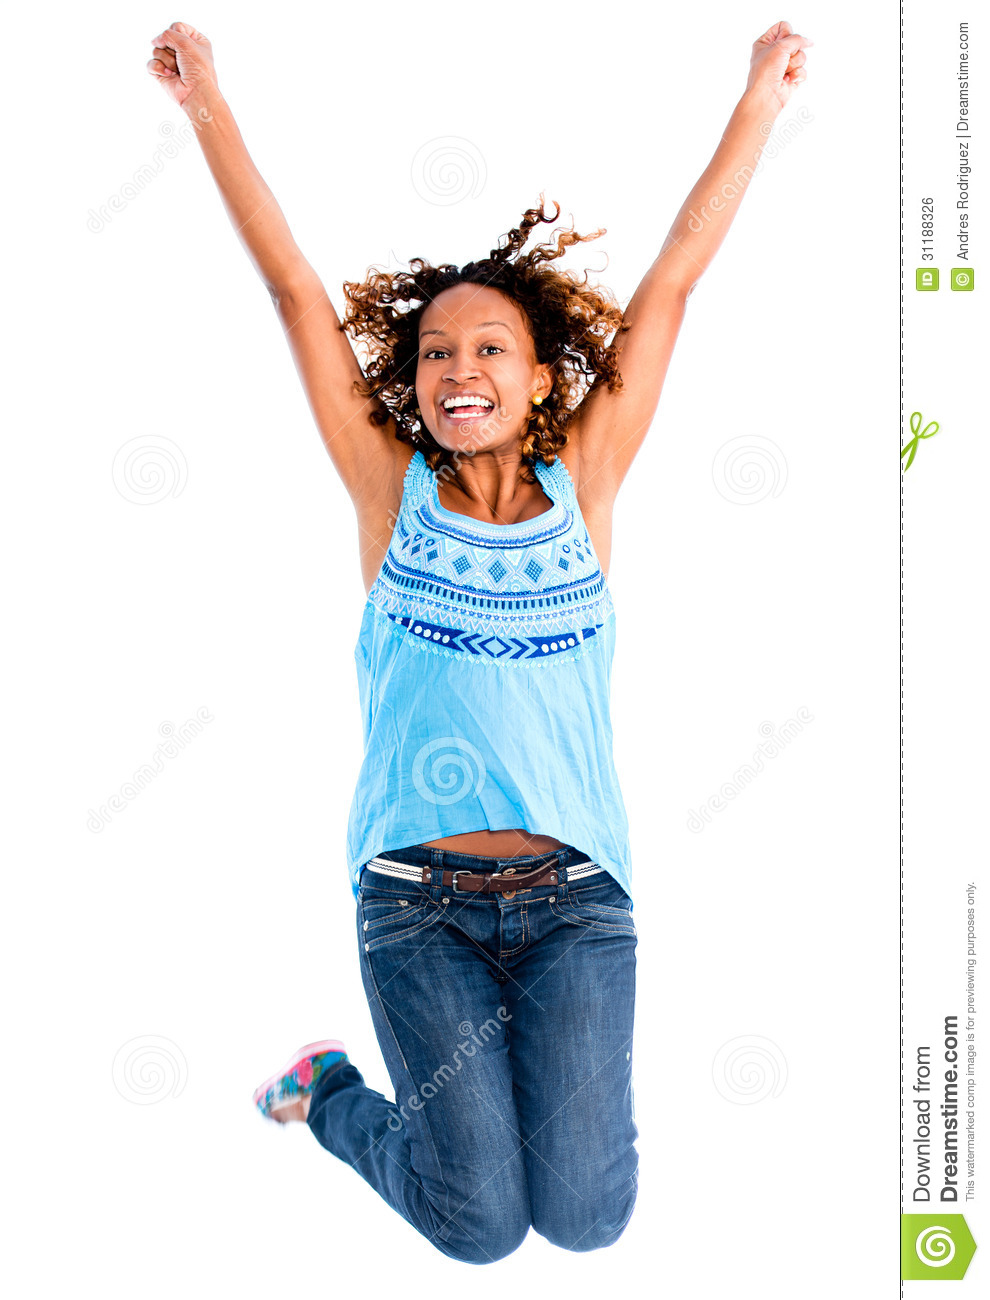 happy-woman-jumping-arms-up-isolated-over-white-background-31188326.jpg